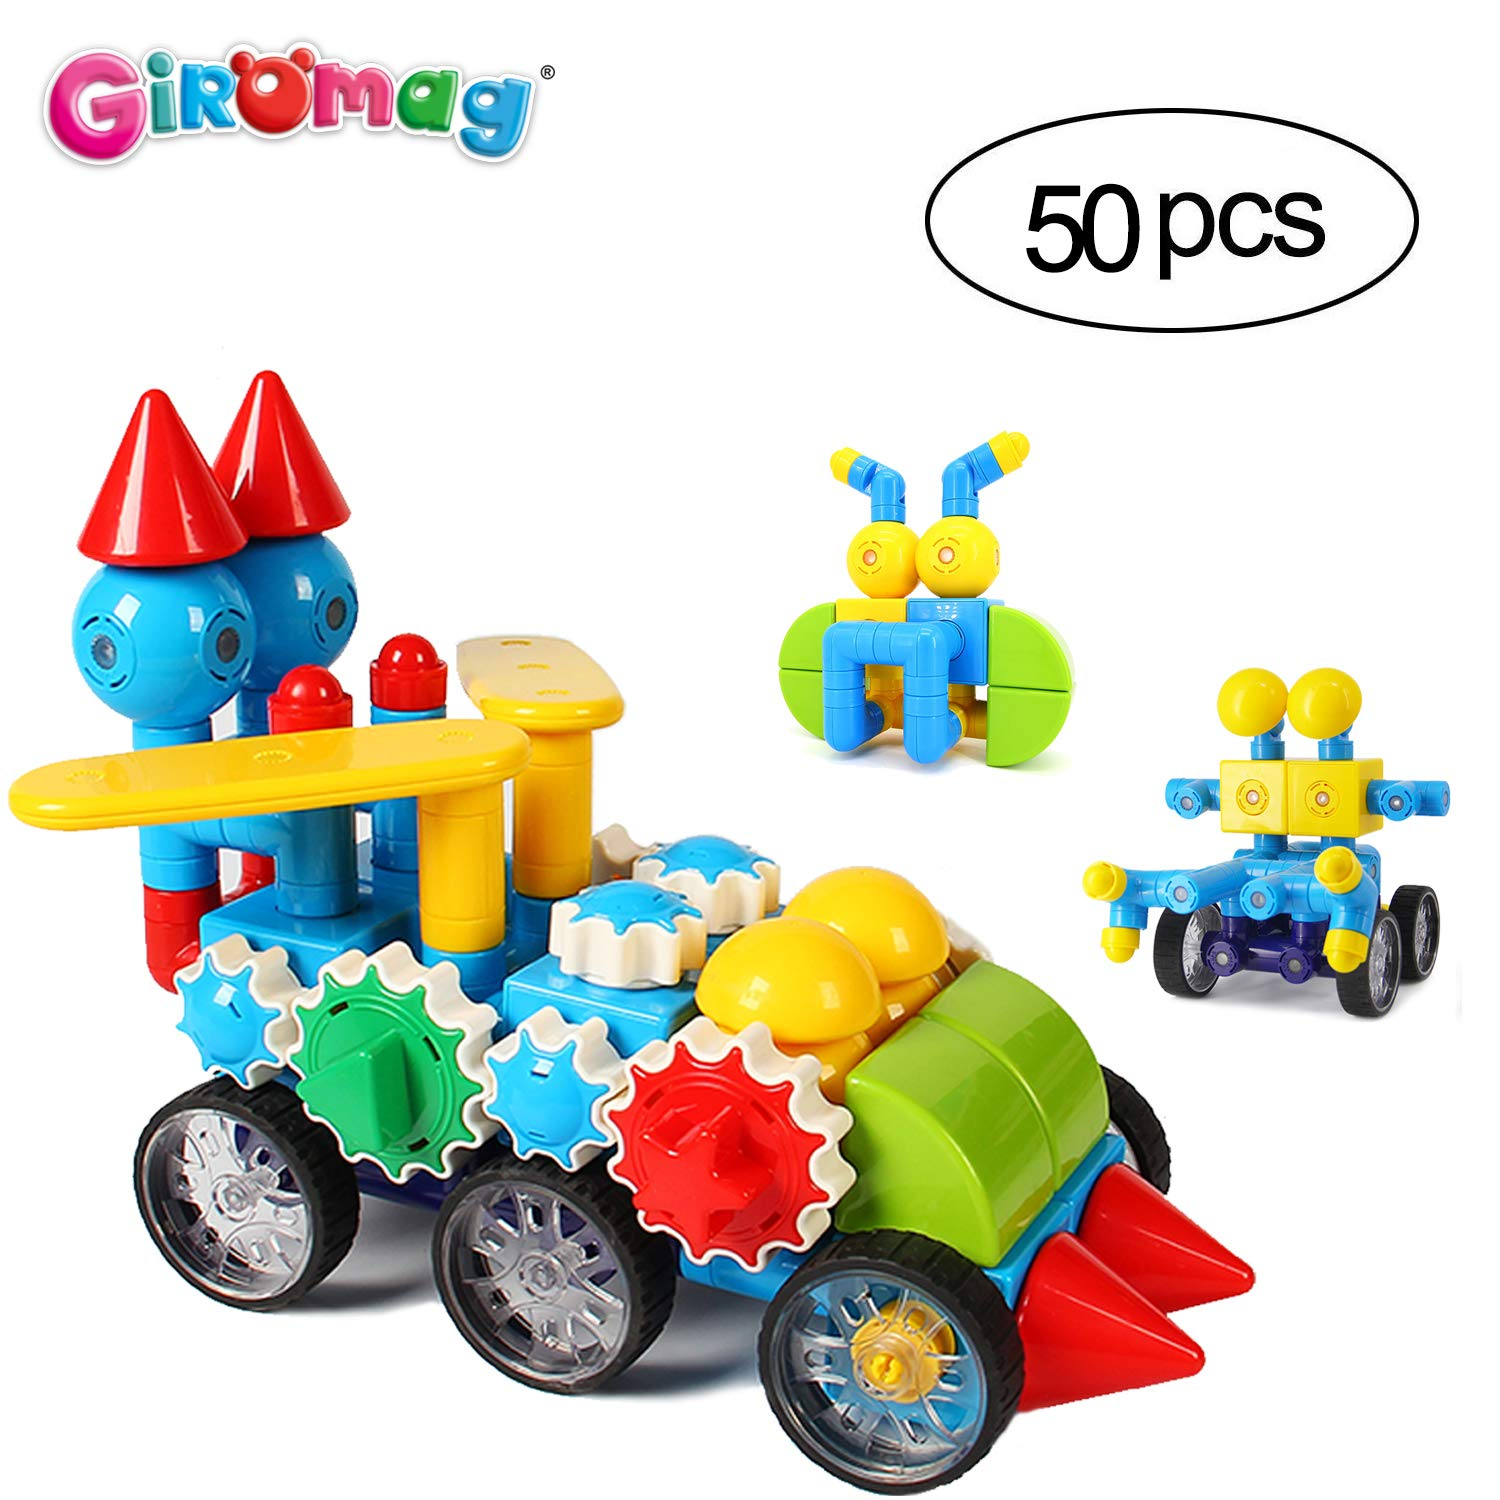 Giromag Magnetic Blocks Construction Film,Building Toys Age 3+,Magnet Toy,ABS Edible Plastic (8707-Mgl50Pcs)